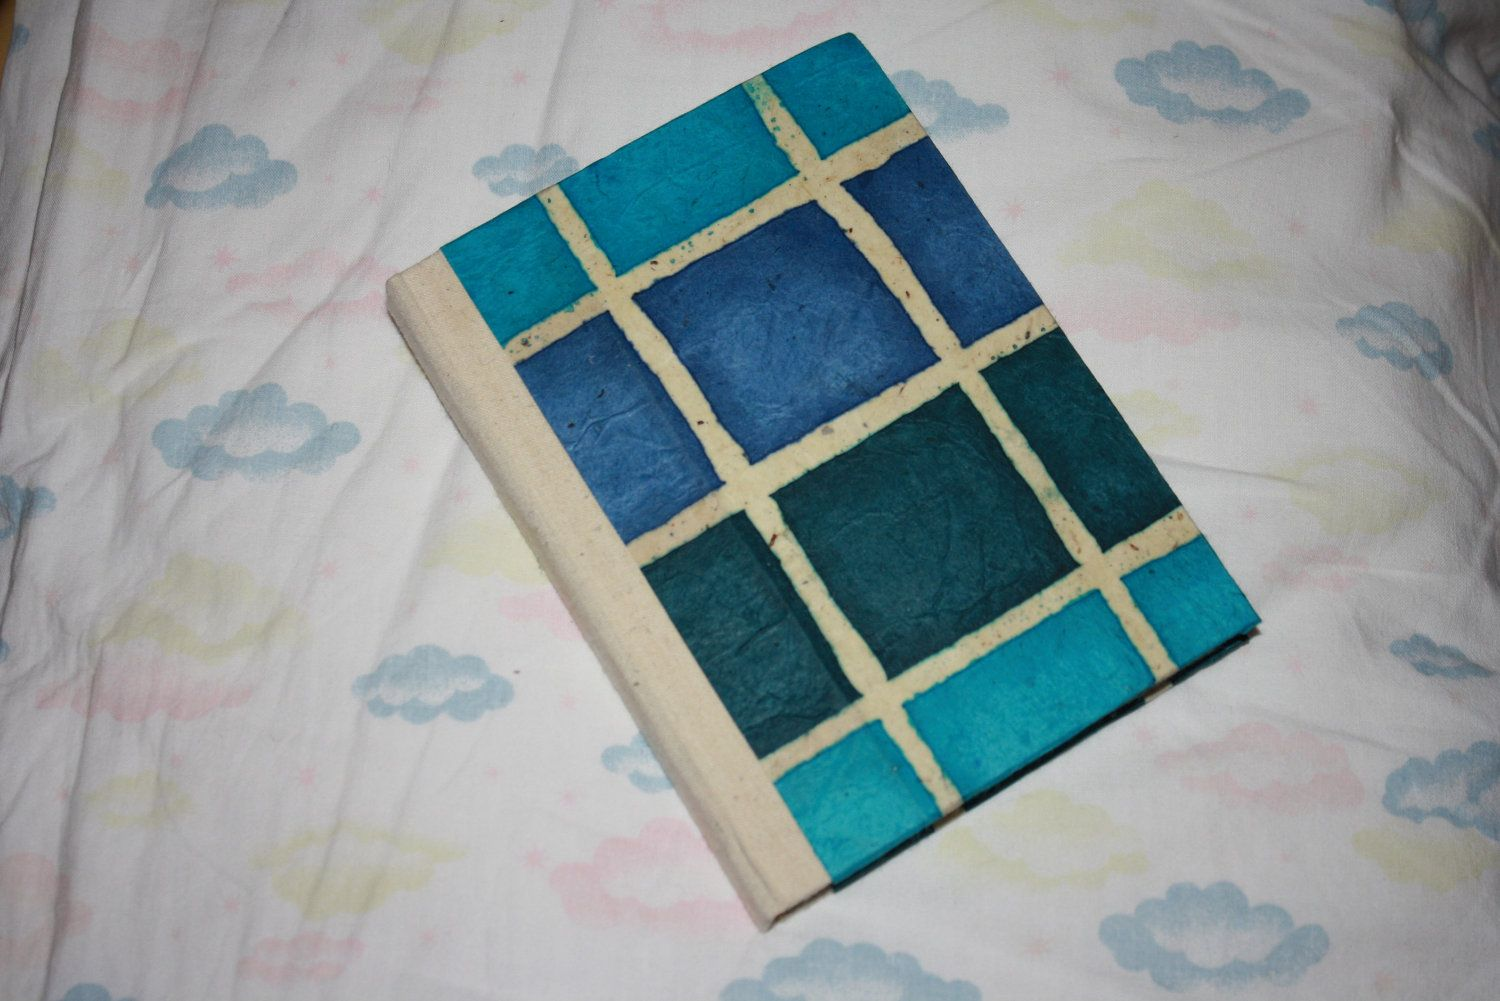 handmade note-book by ConLeMani on Etsy